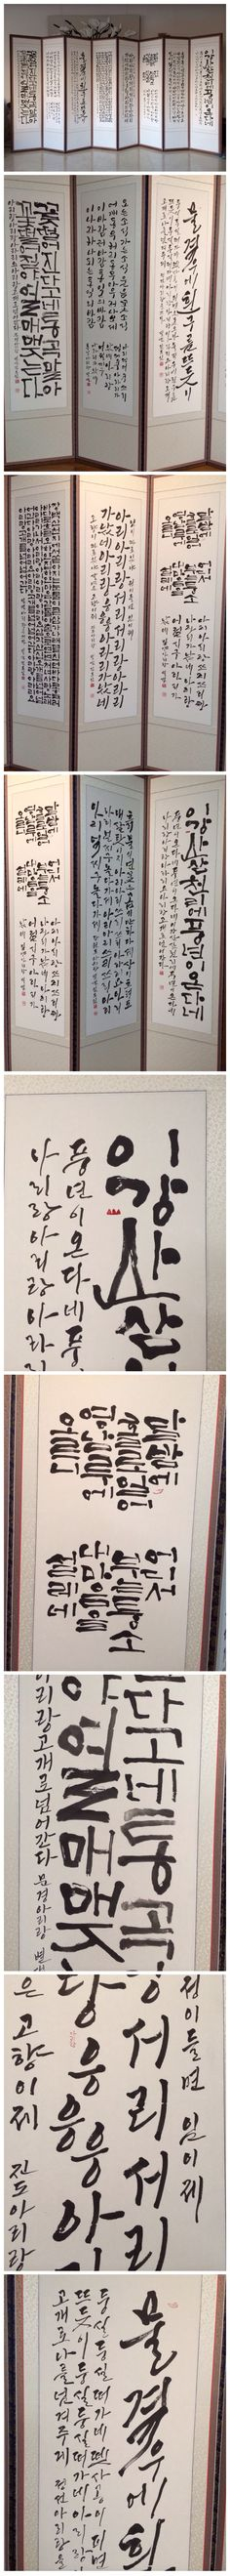 Korean Calligraphy by Byulsam - A eight-pane screen 'ARIRANG'